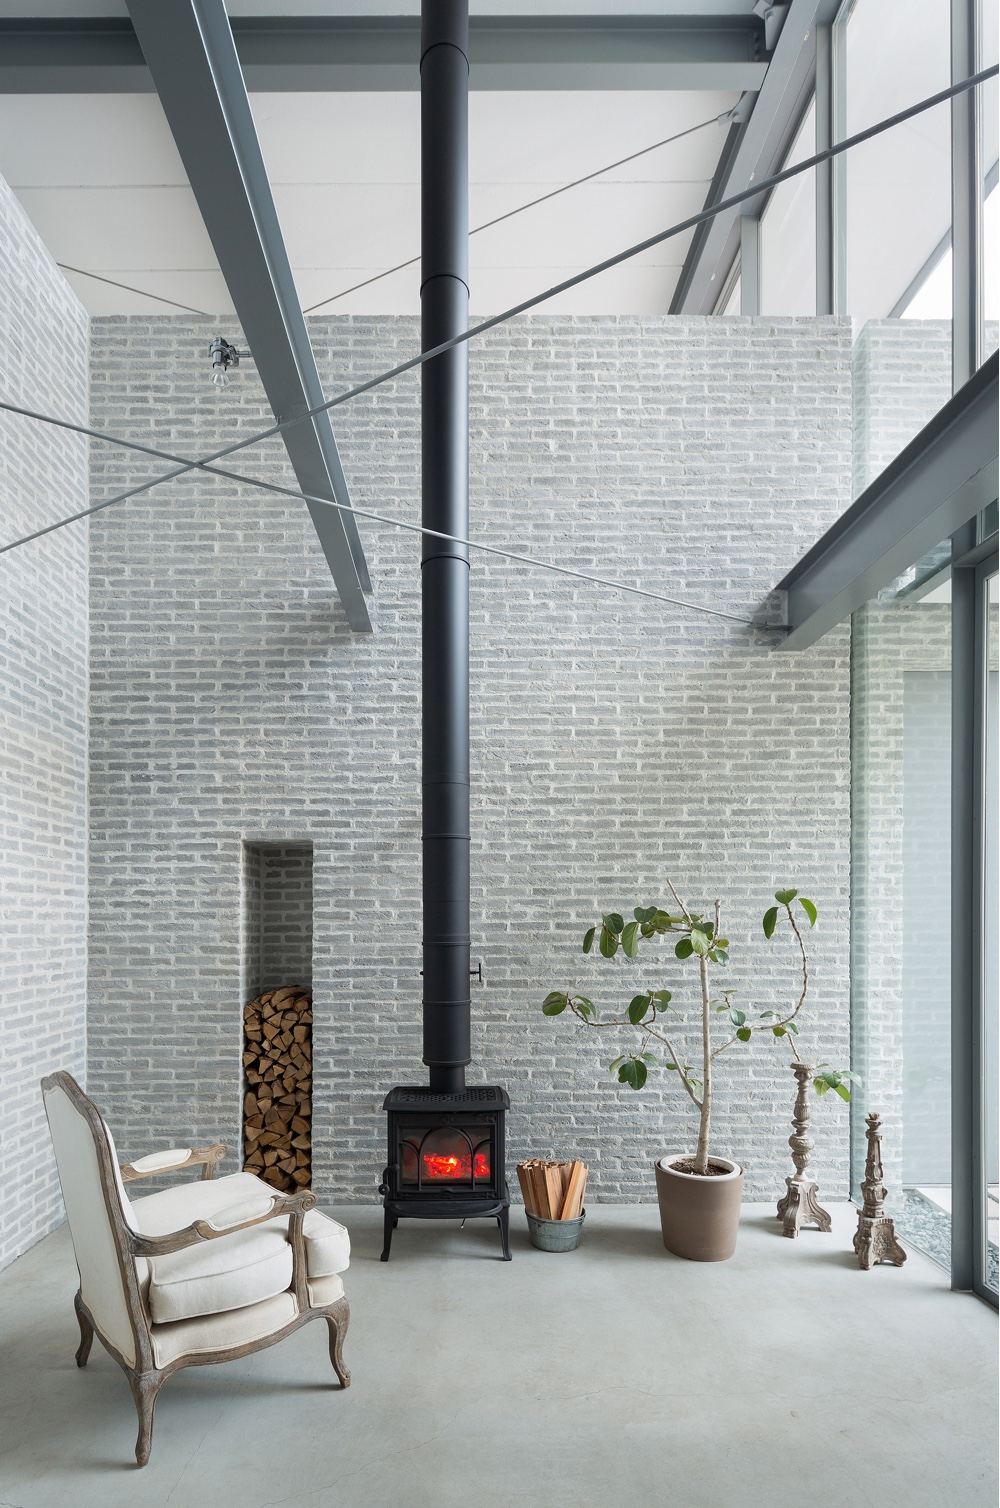 A cosy fireside in ahouse in Setagaya, Tokyo,by Comma Design. Image© Takumi Ota via ArchDaily.